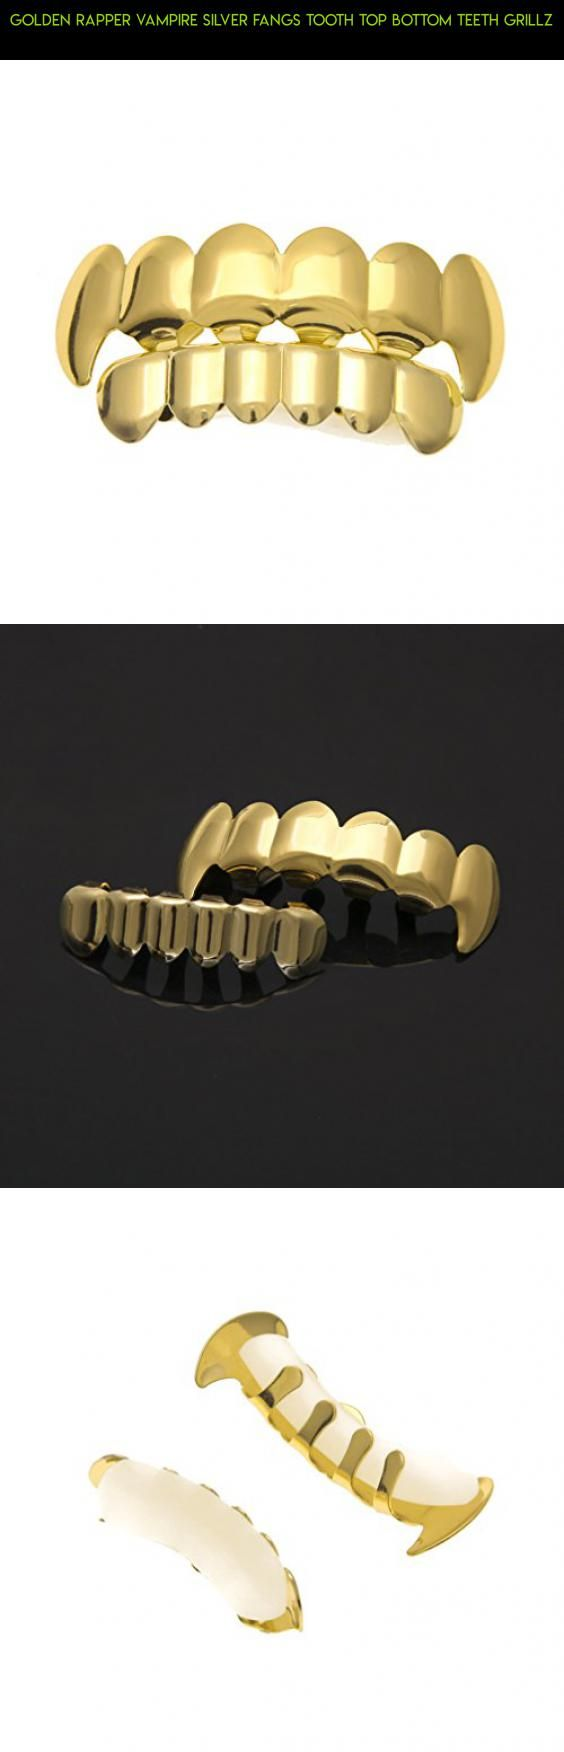 Golden Rapper Vampire Silver Fangs Tooth Top Bottom Teeth Grillz #grills #plans #drone #parts #tech #products #gadgets #kit #5 #for #fpv #camera #racing #technology #shopping #teeth